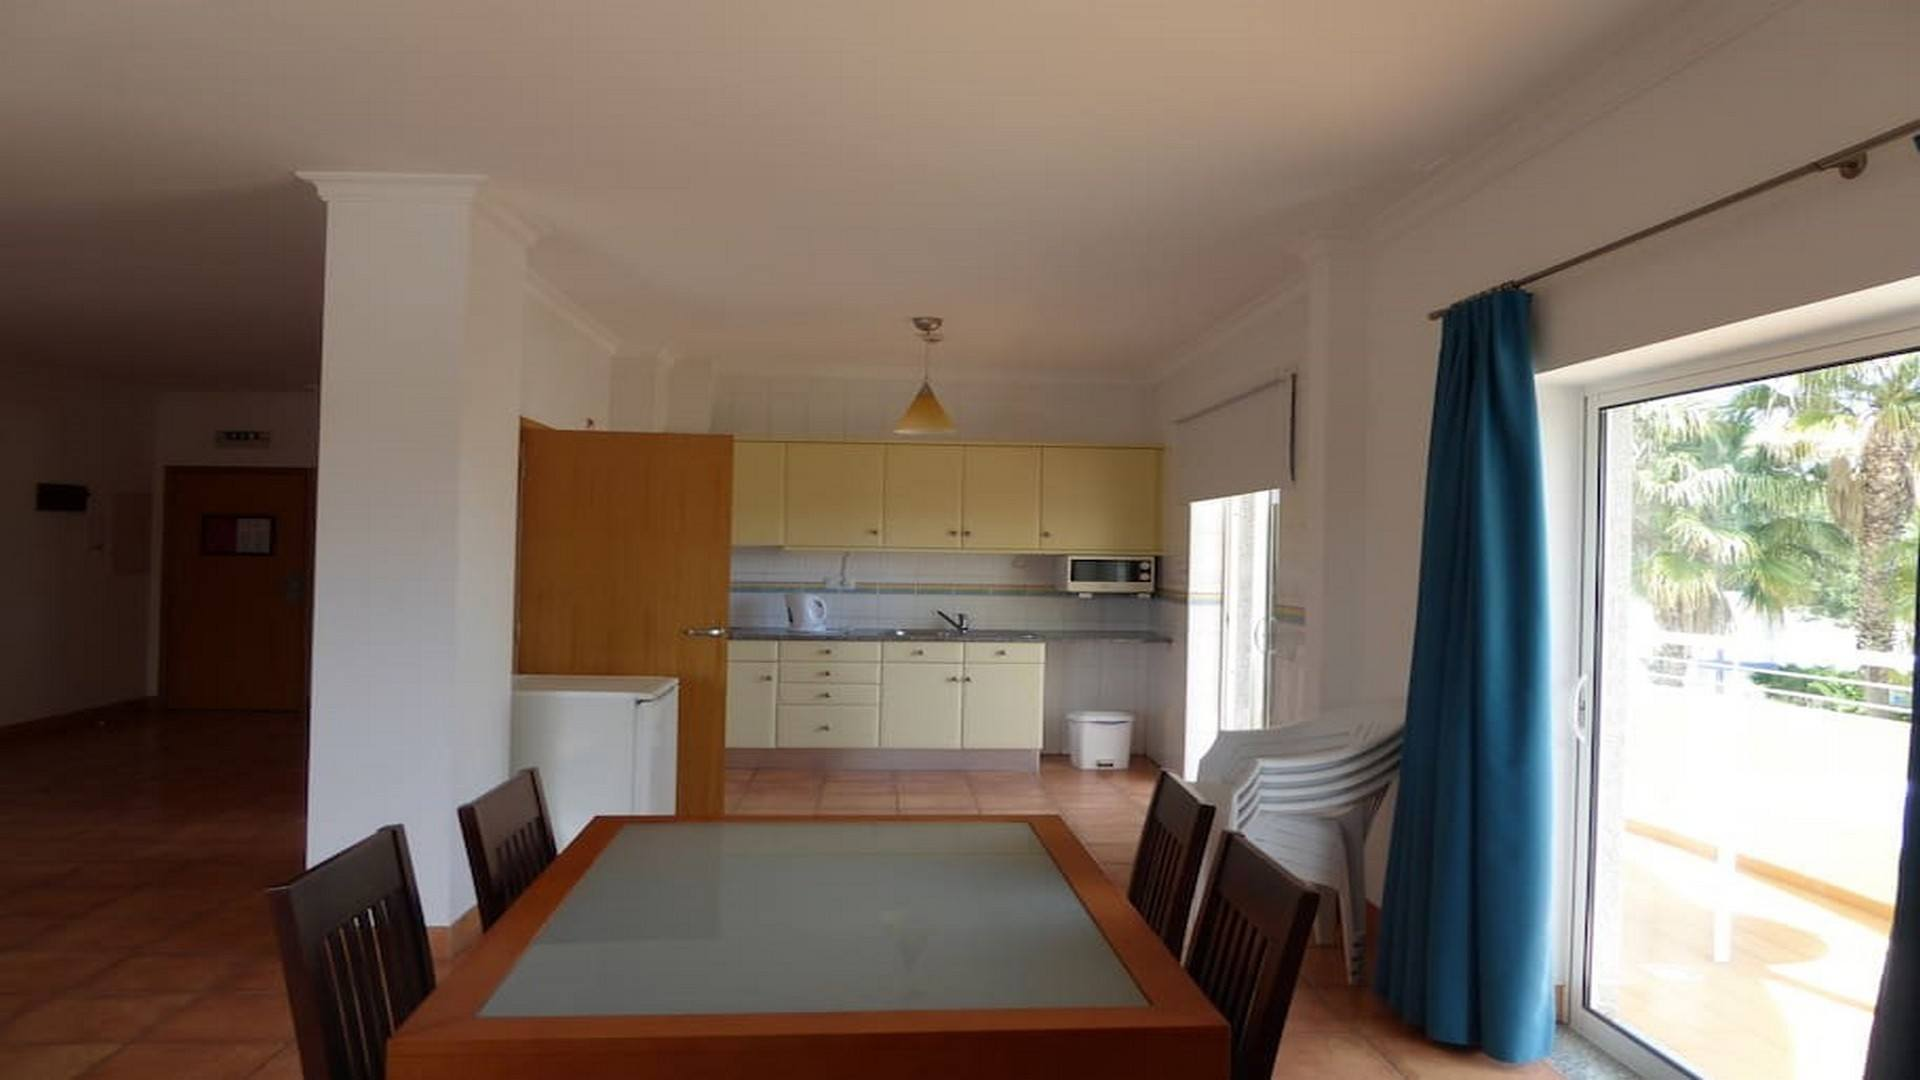 Spacious one bedroom apartment with pool by porto de m s beach sw pm see you soon for Spacious one bedroom apartment